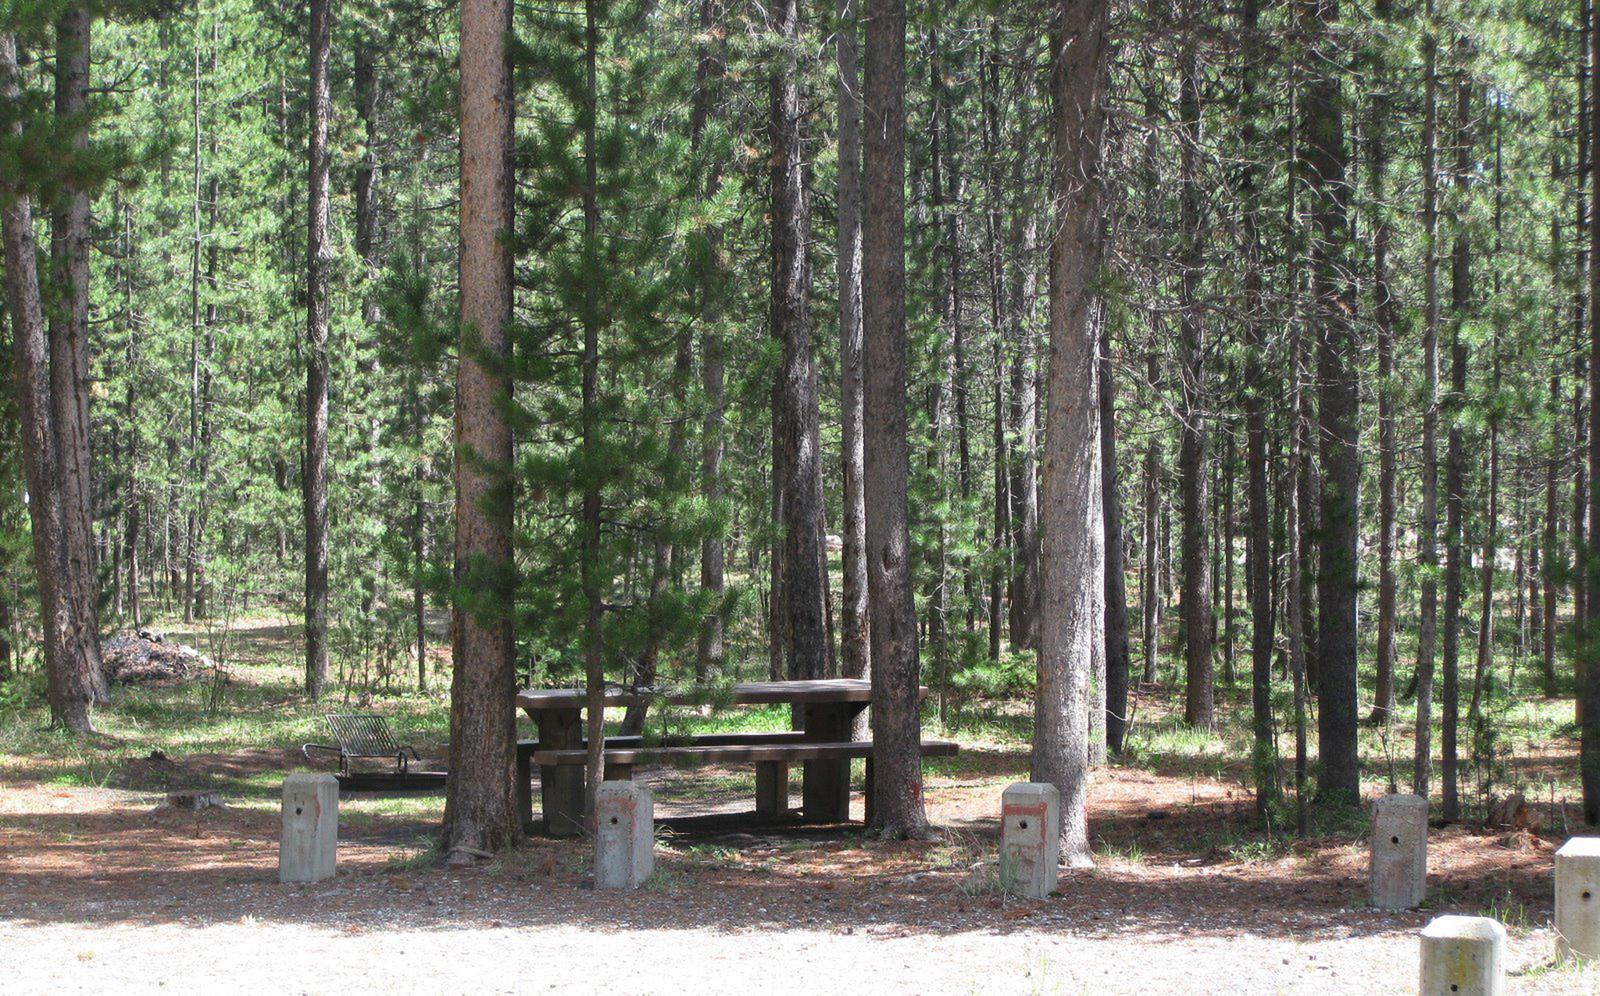 Site B17, surrounded by pine trees, picnic table & fire ringSite B17